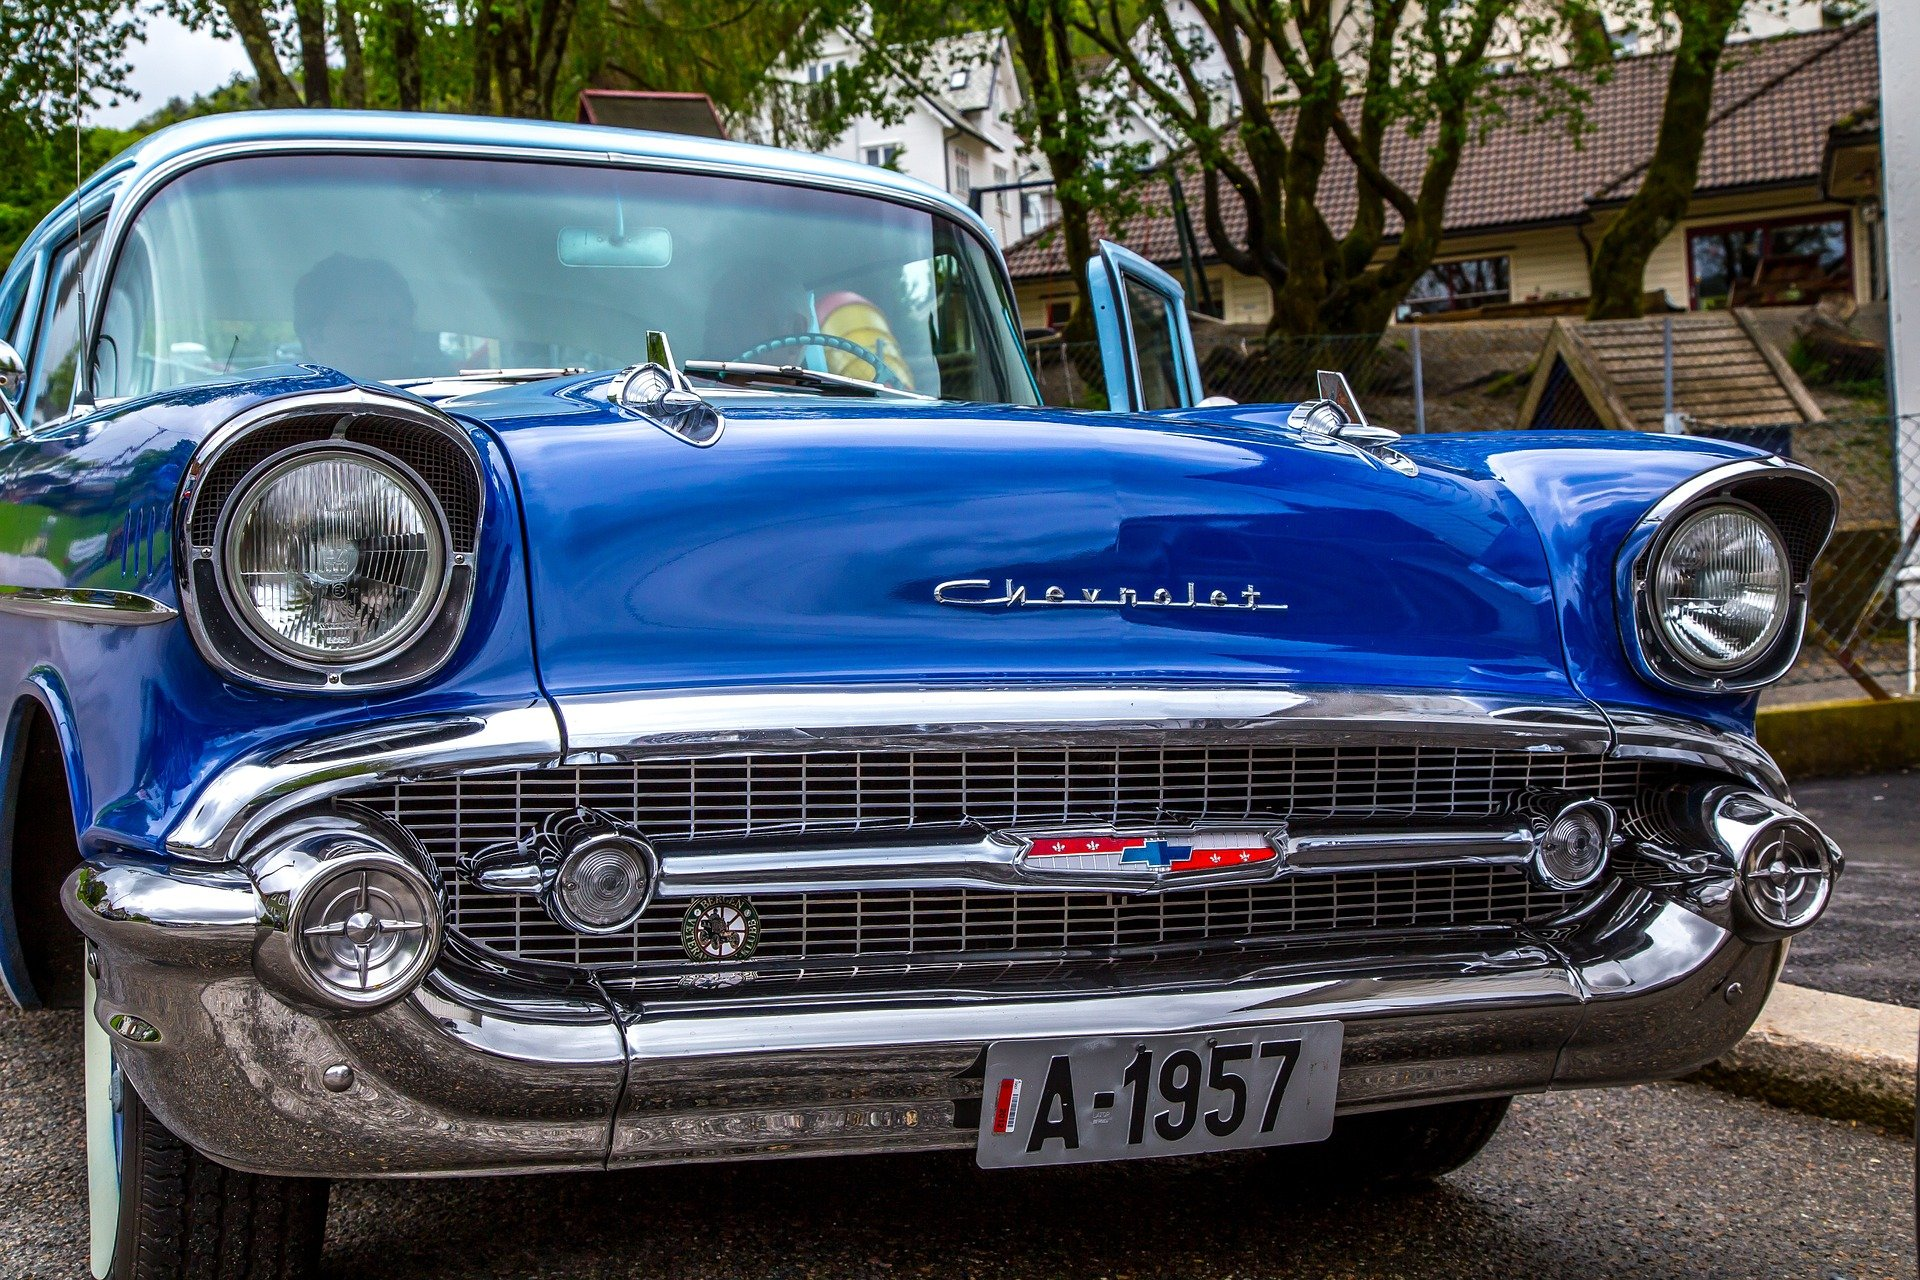 Classic Blue Chevrolet in Greensboro North Carolina - VeteranCarDonations.org